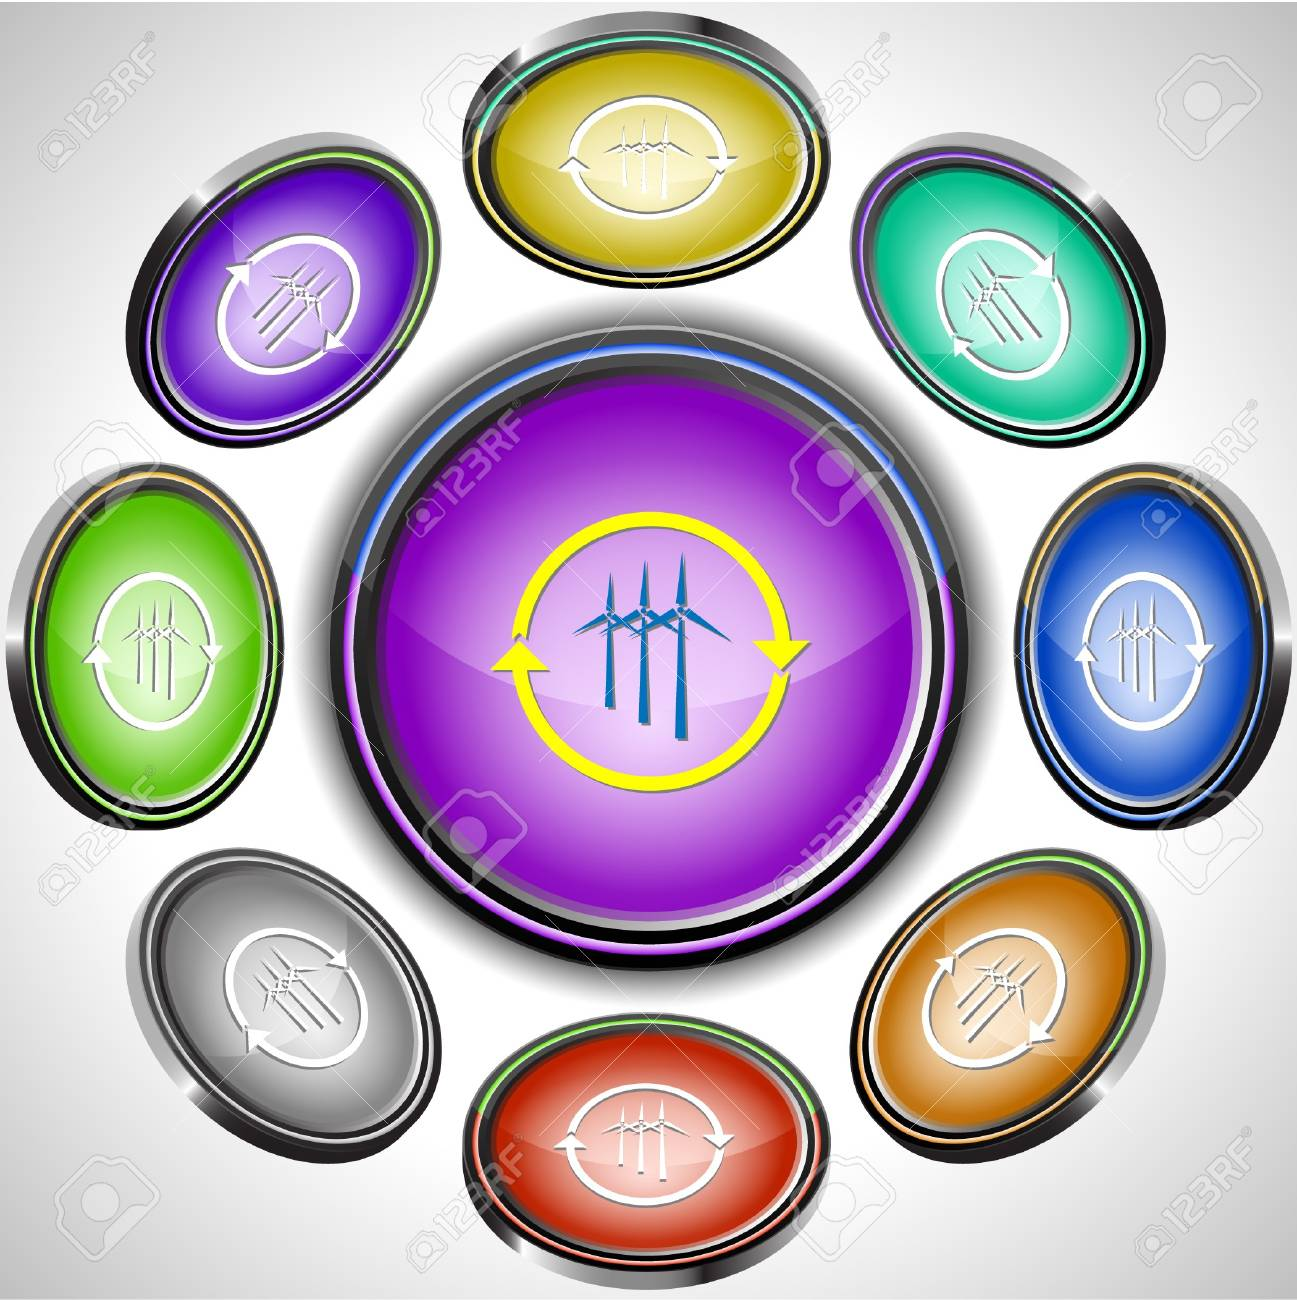 Wind turbine. internet buttons. 8 different projections. Stock Vector - 7261873